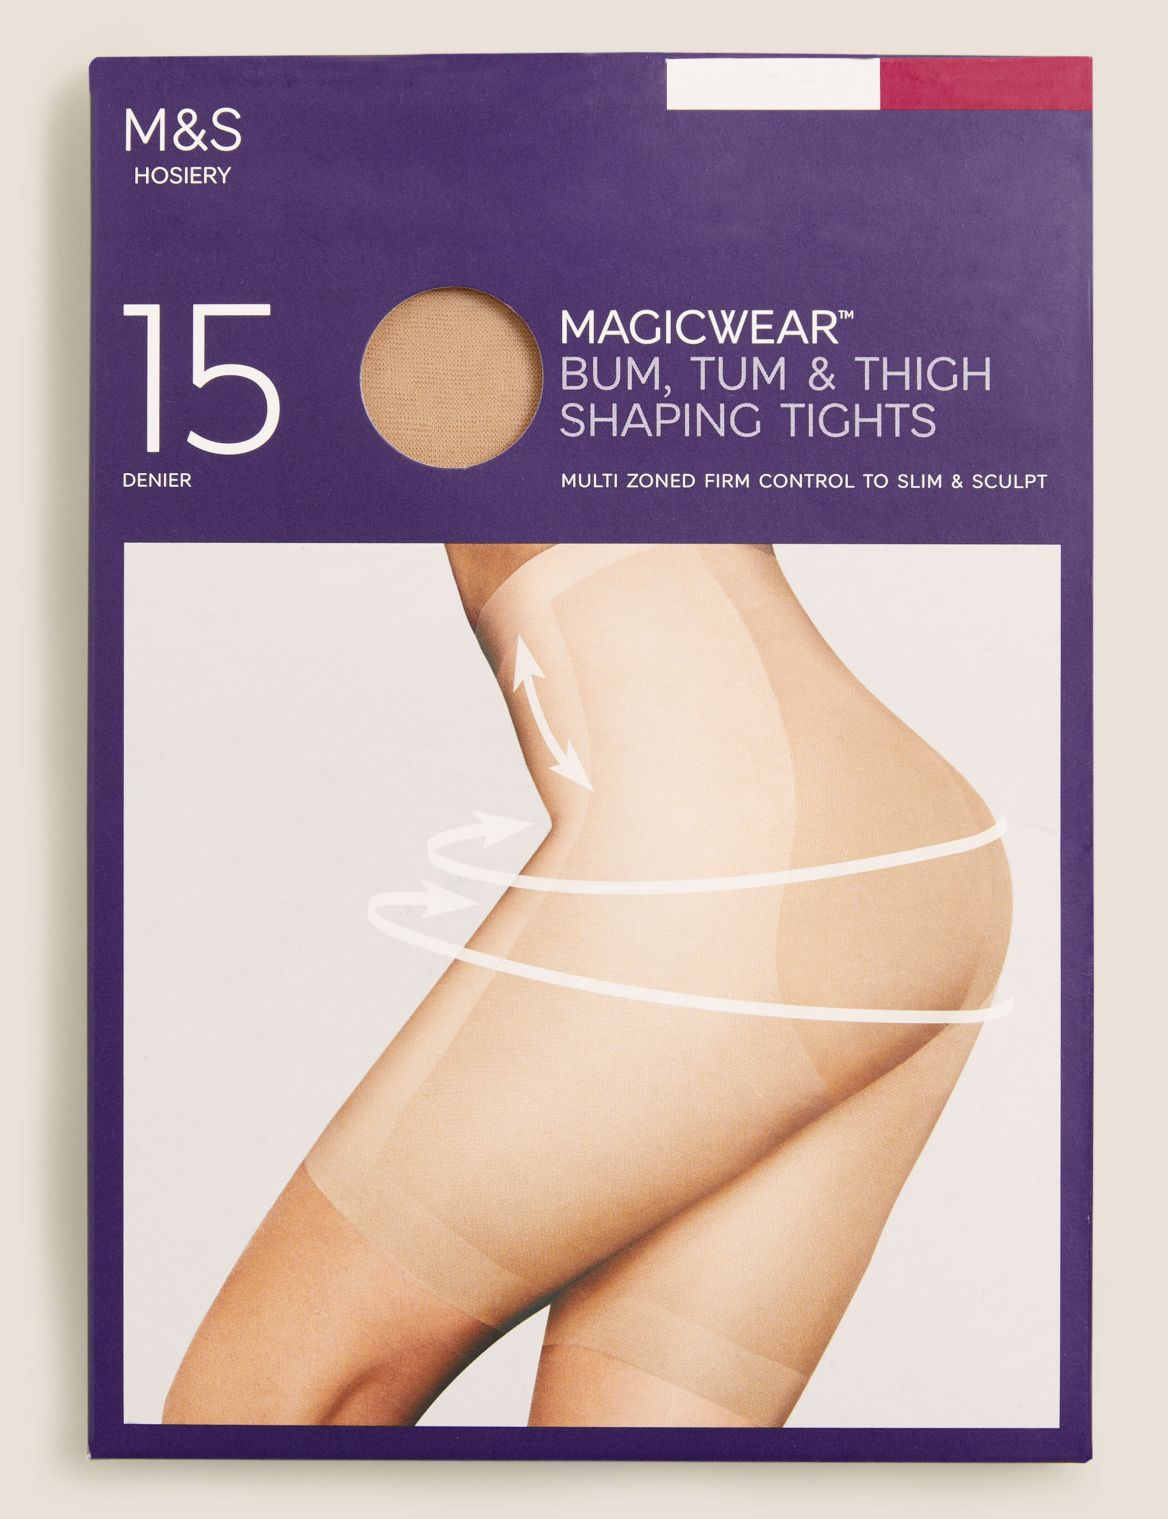 15 Denier Magicwear™ Shine Body Shaper Tights natural tan